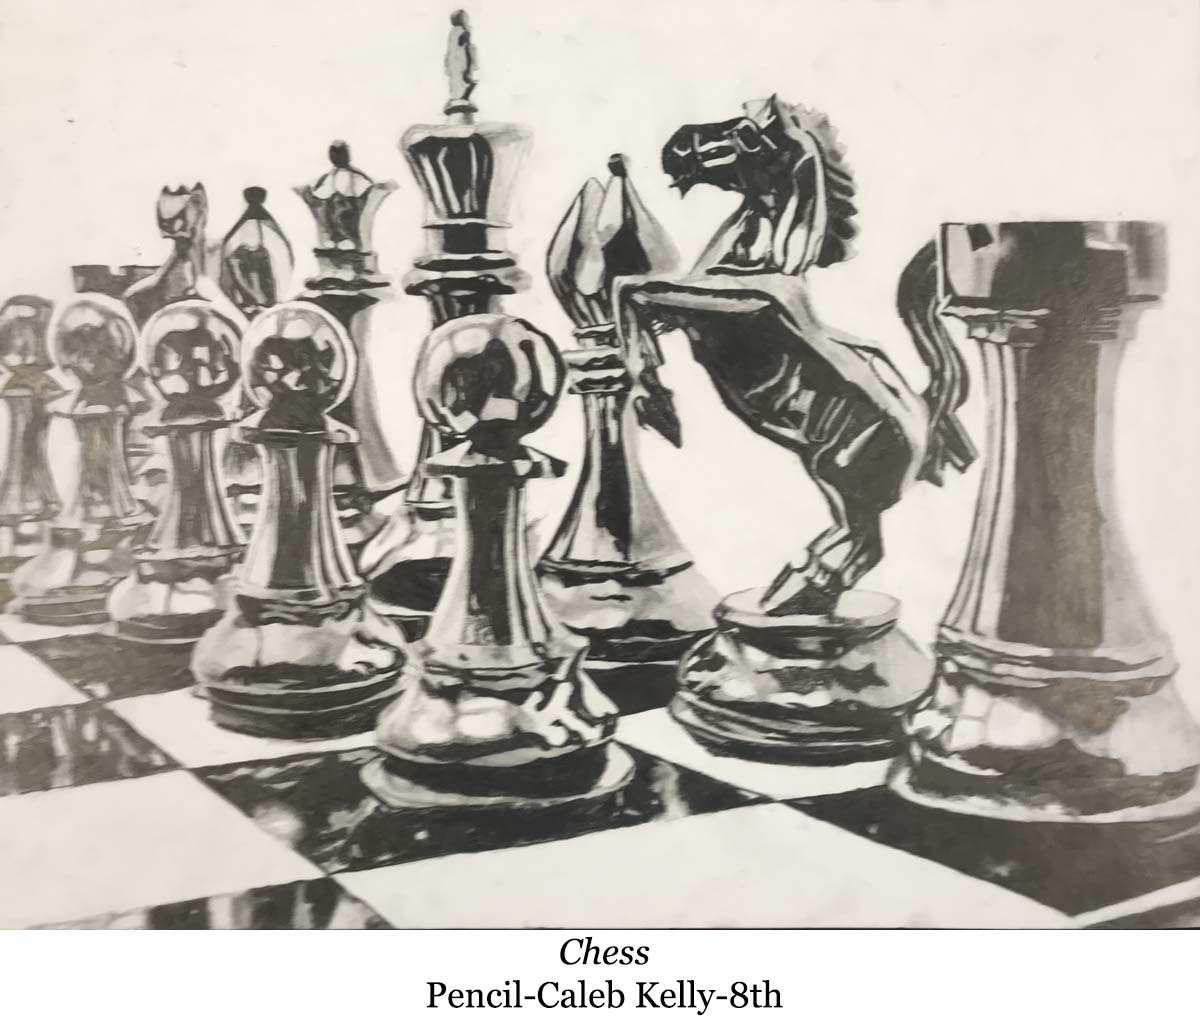 1587093421-chess-pencil-caleb_kelly-8th